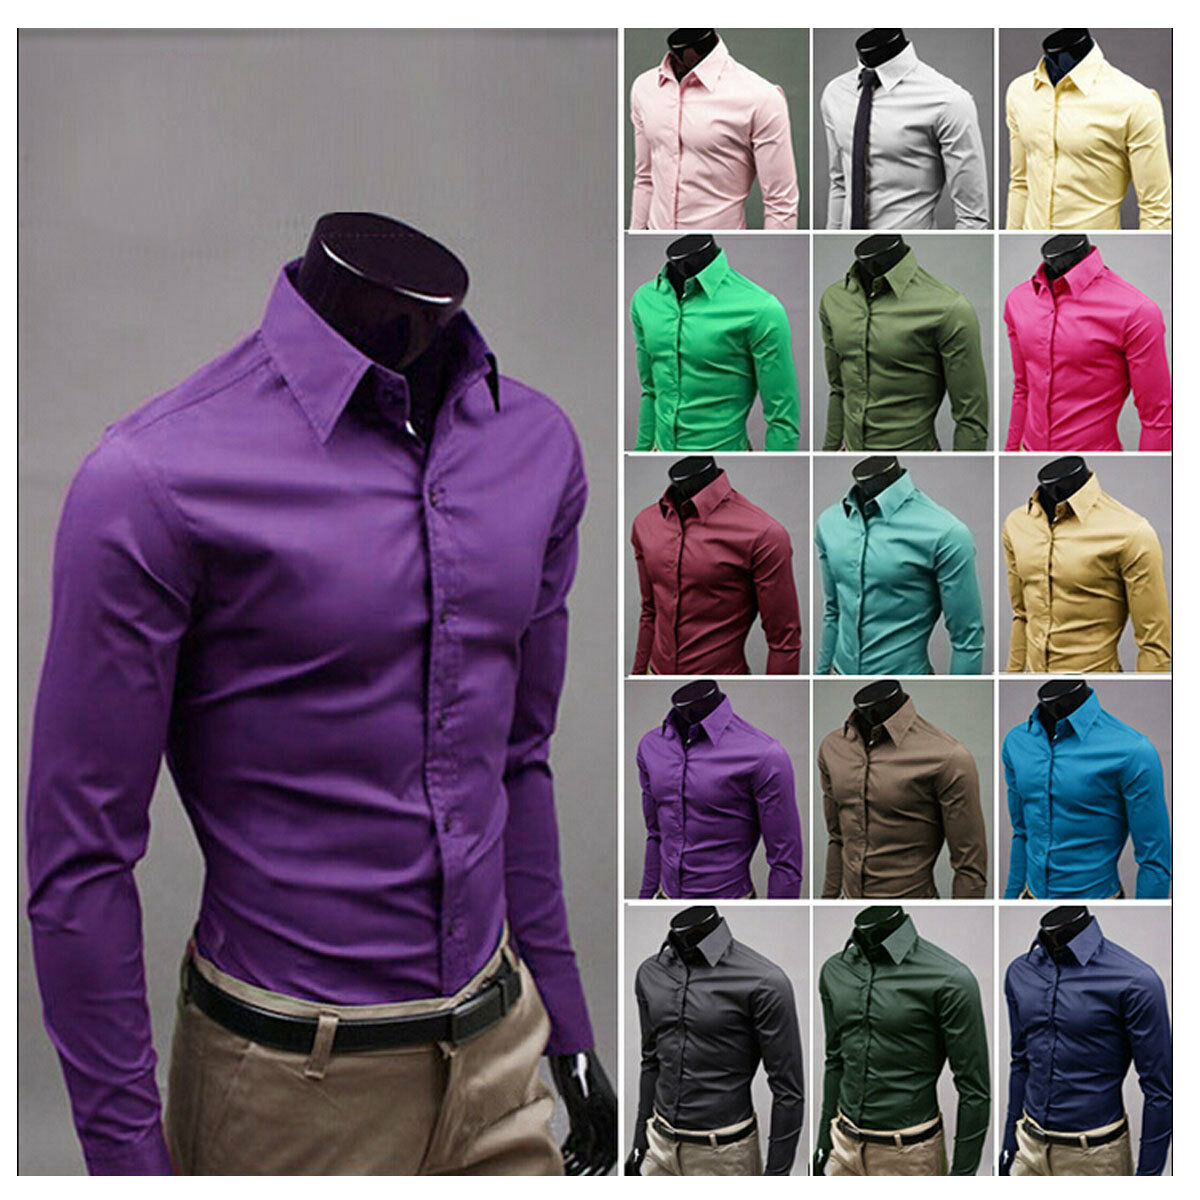 $8.67 - Fashion Mens Luxury Stylish Casual Dress Slim Fit T-Shirts Casual Long Sleeve US